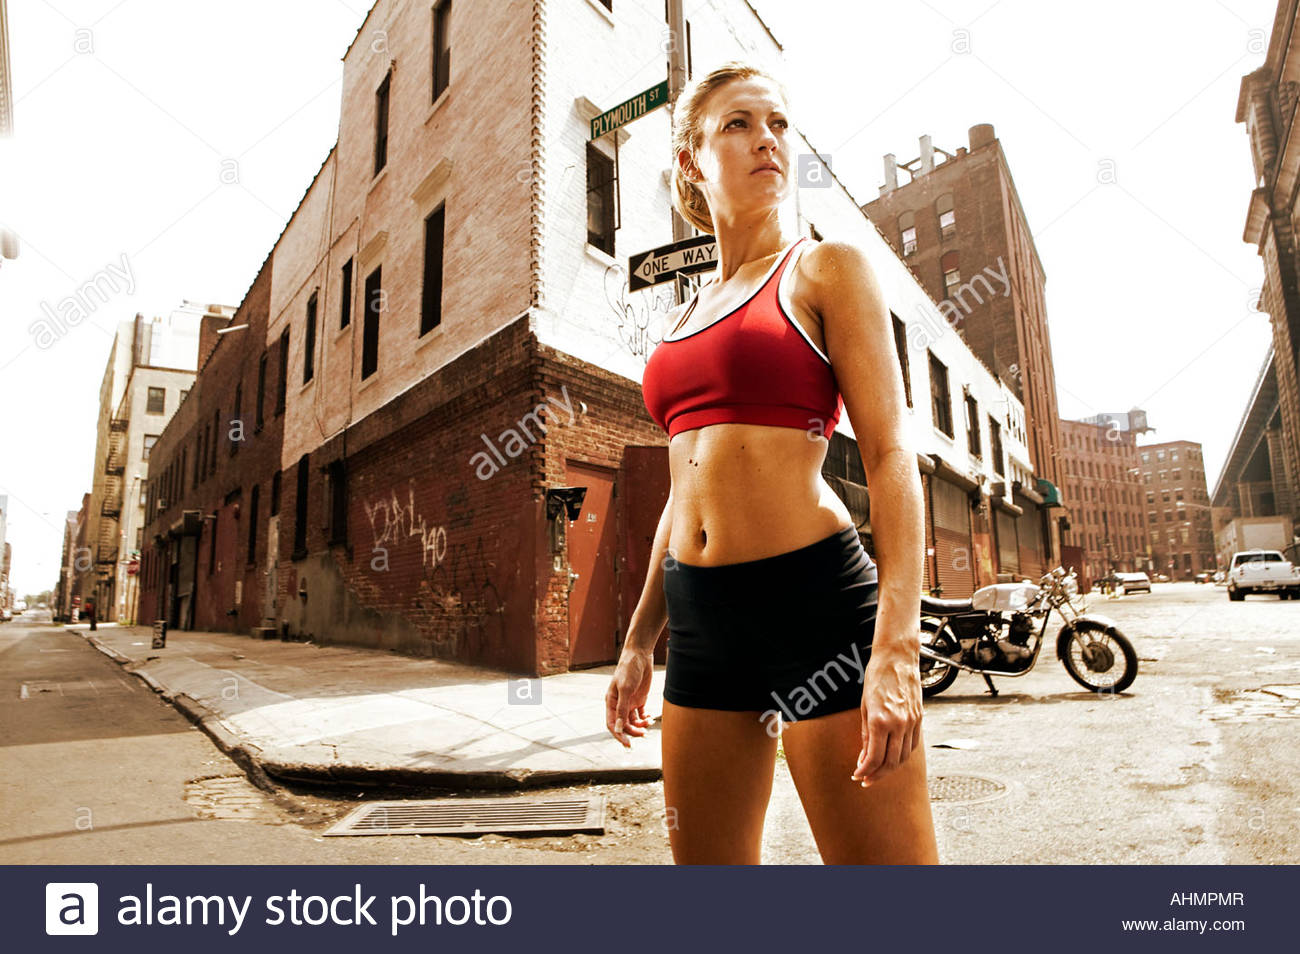 Woman athlete on urban street - Stock Image